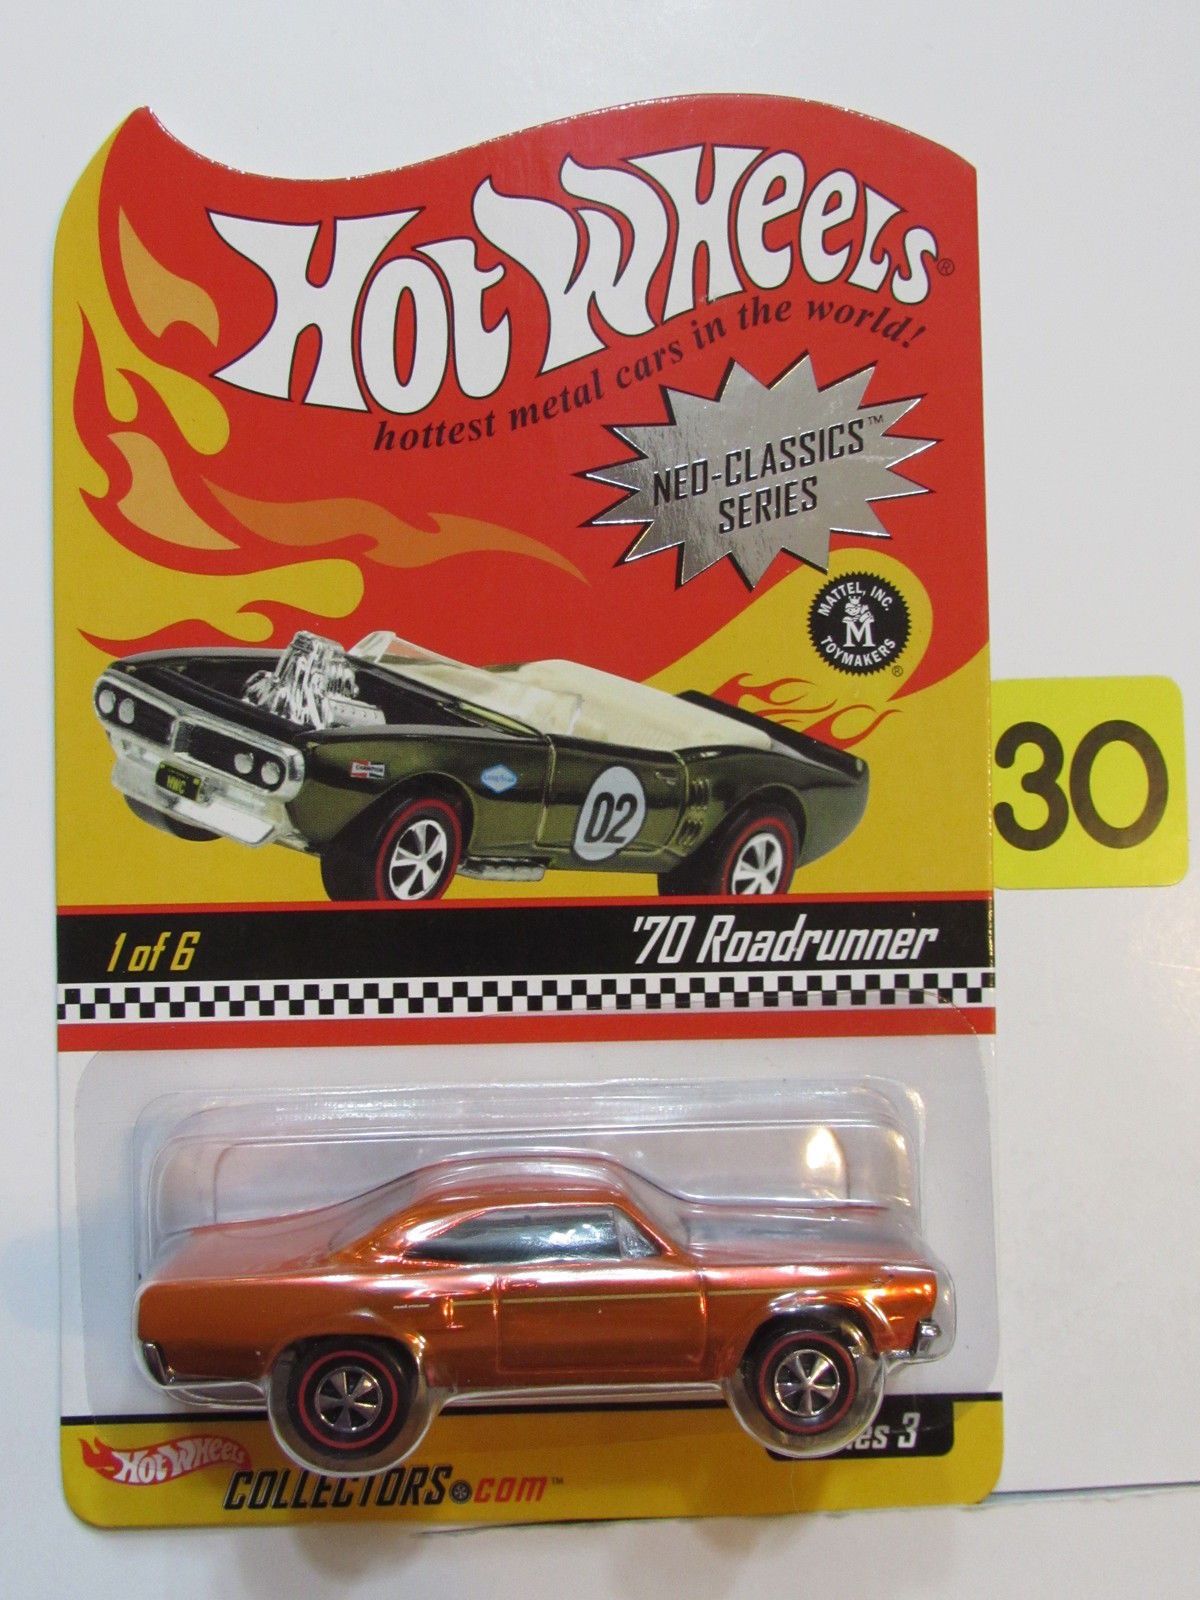 HOT WHEELS 2003 NEO-CLASSICS SERIES #1/6 SERIES 3 - '70 ROADRUNNER